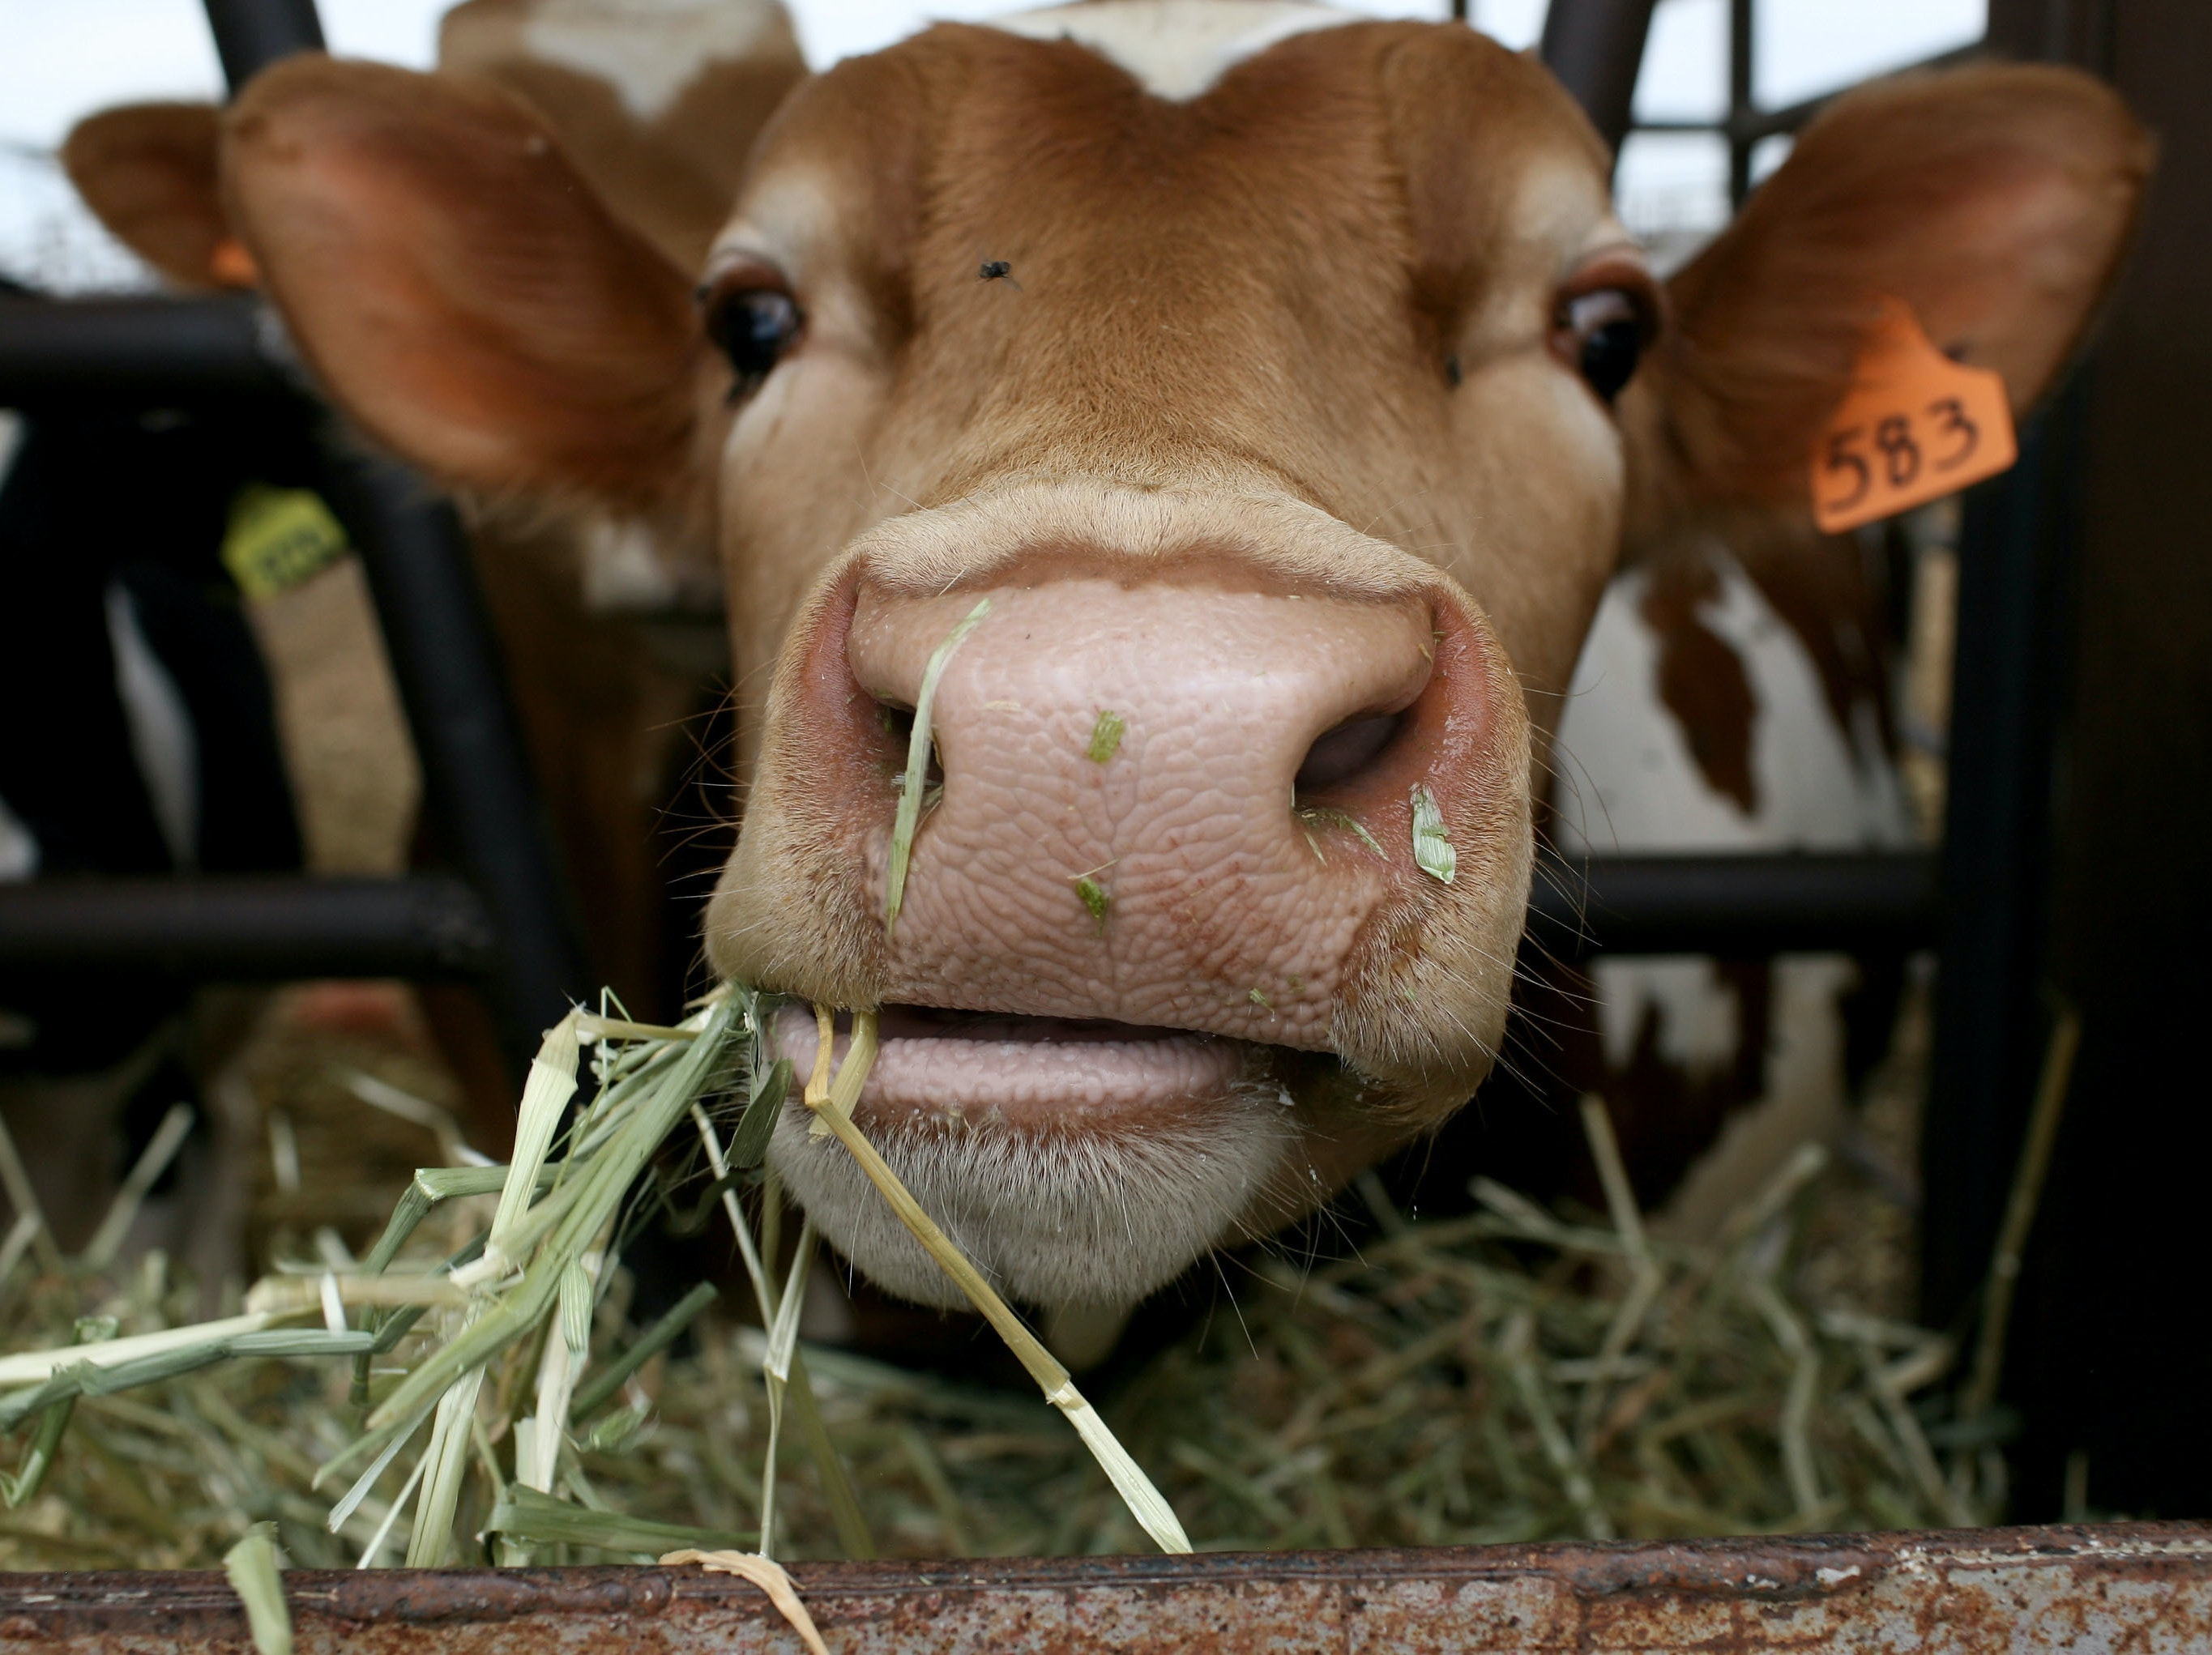 Scientists Are Using Seaweed to Reduce Methane Emissions in Cow Farts